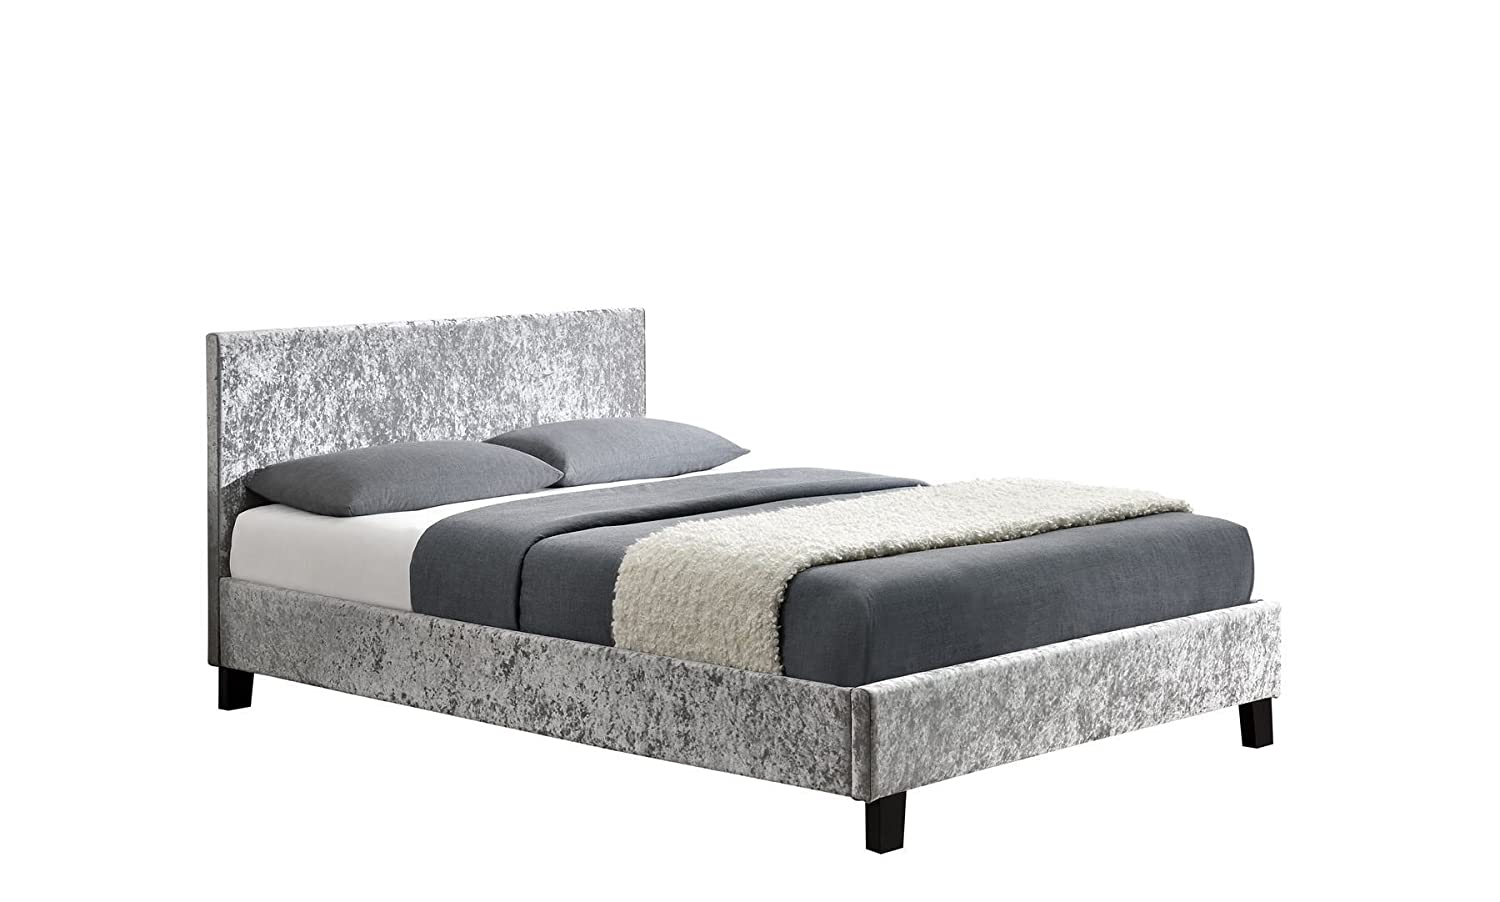 Home, Furniture & Diy Honest Fusion Fabric Single Bed Grey